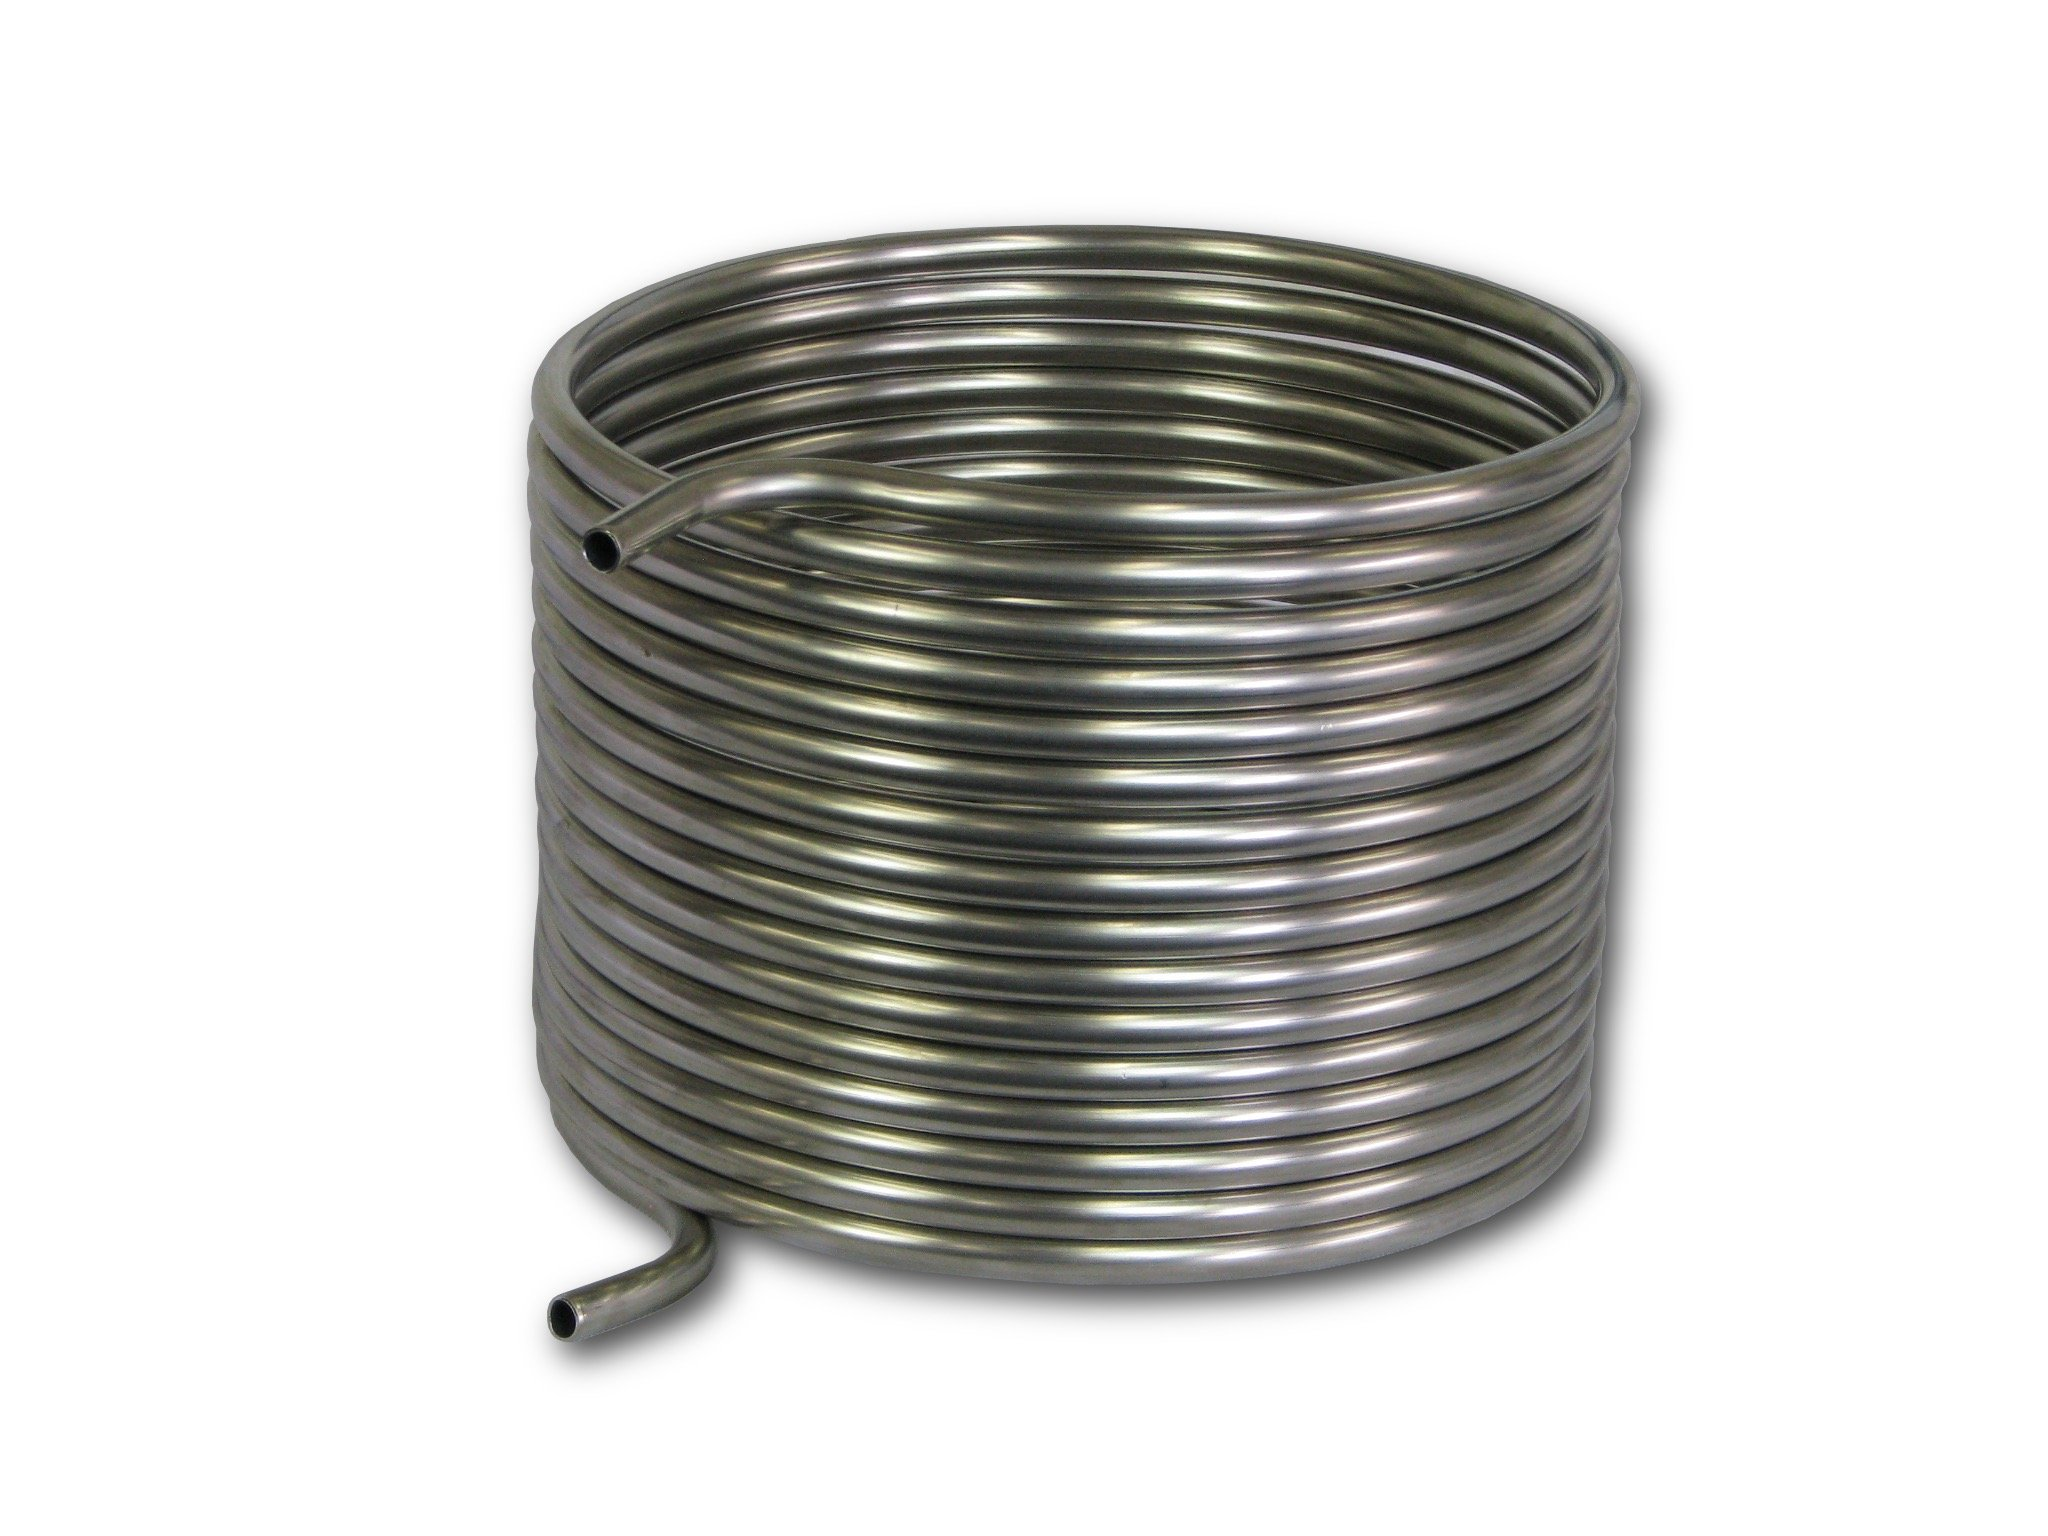 COLDBREAK 50' HERMS Coil, 1/2'' Stainless Steel, 12'' Diameter, Step Mash 10-20 Gallon Batches